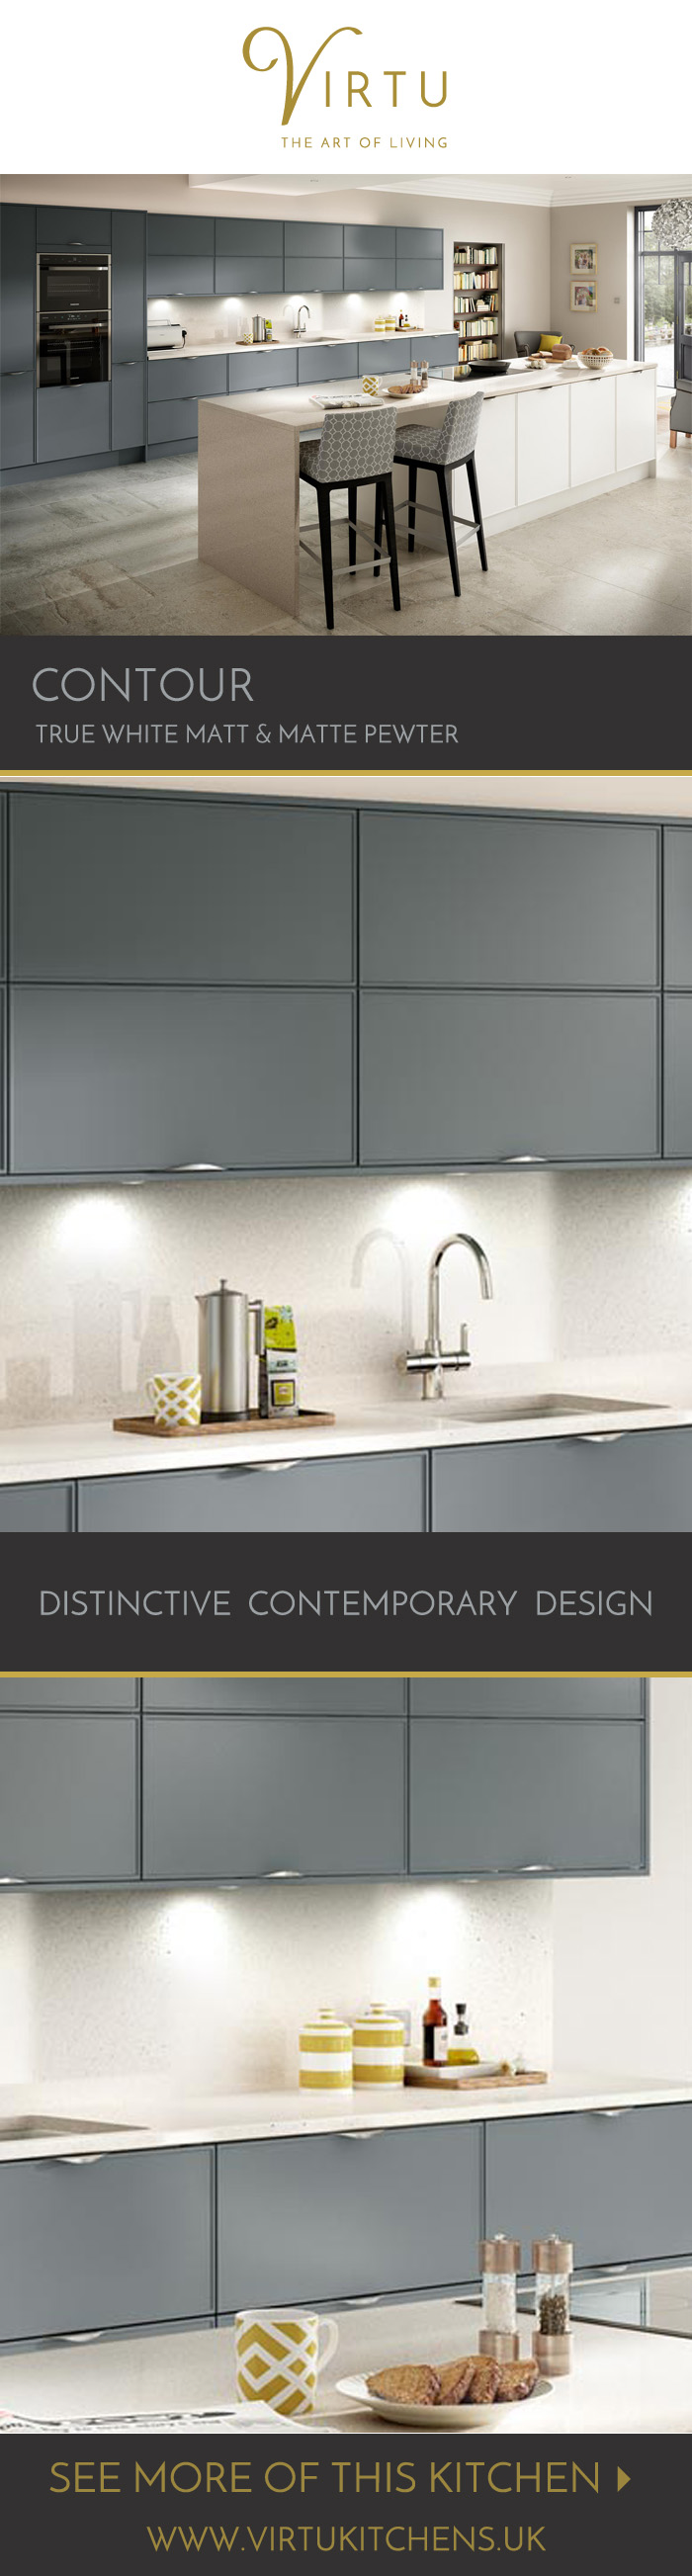 Contour is for lovers of modern minimalism. The versatile doors